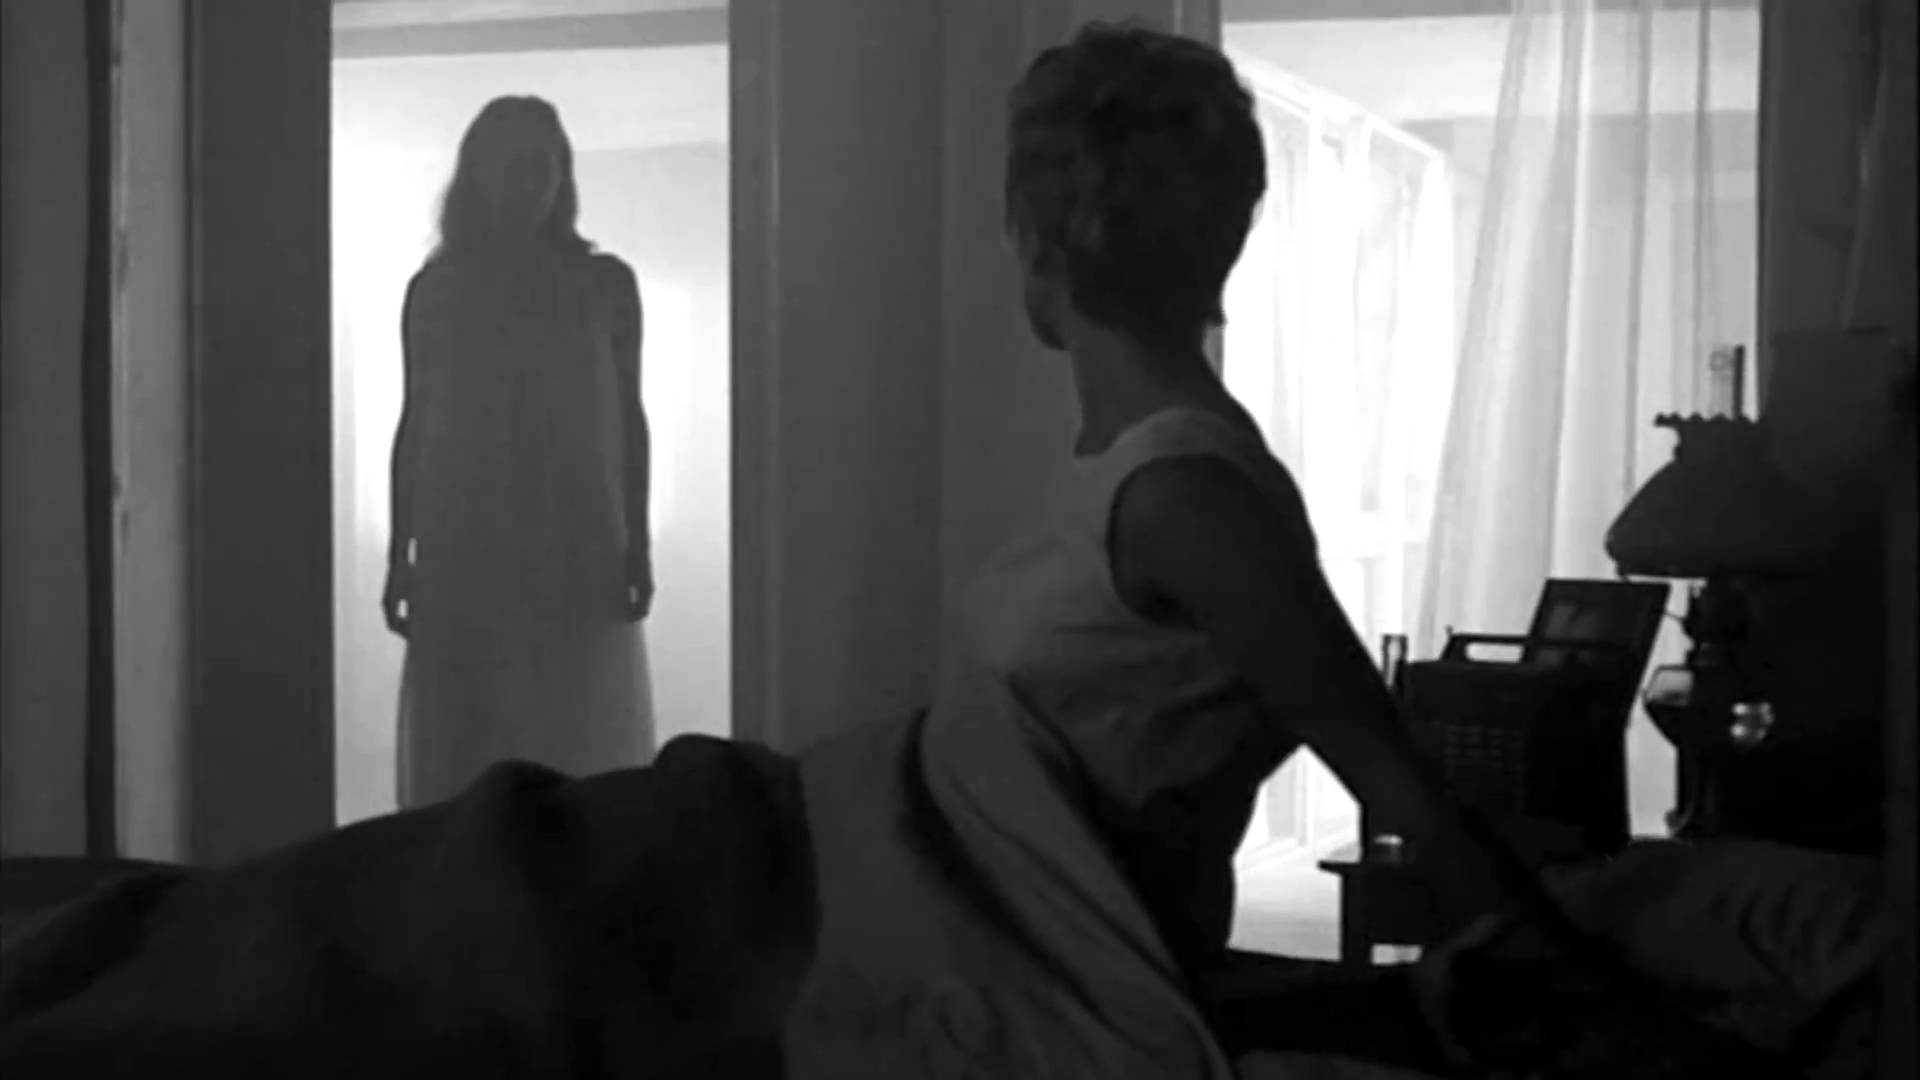 a woman sits upright in bed and sees a female figure looming in her bedroom doorway